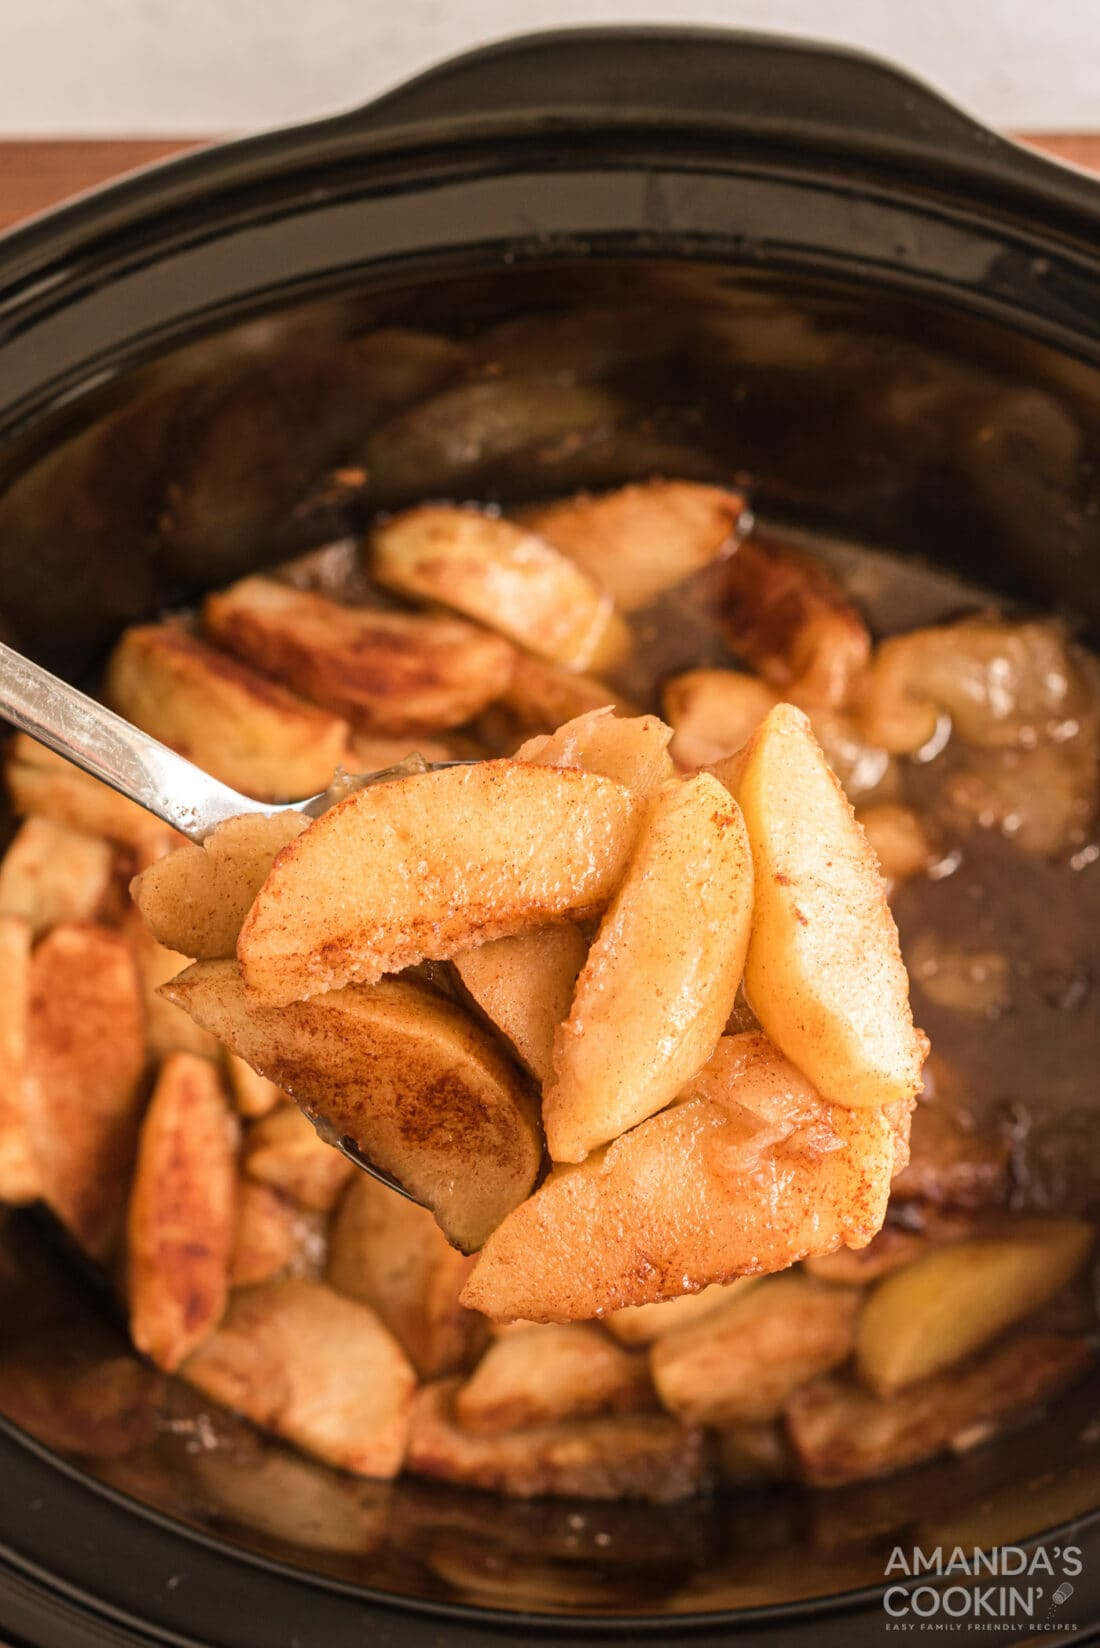 spooning out some Crockpot Cinnamon Apples